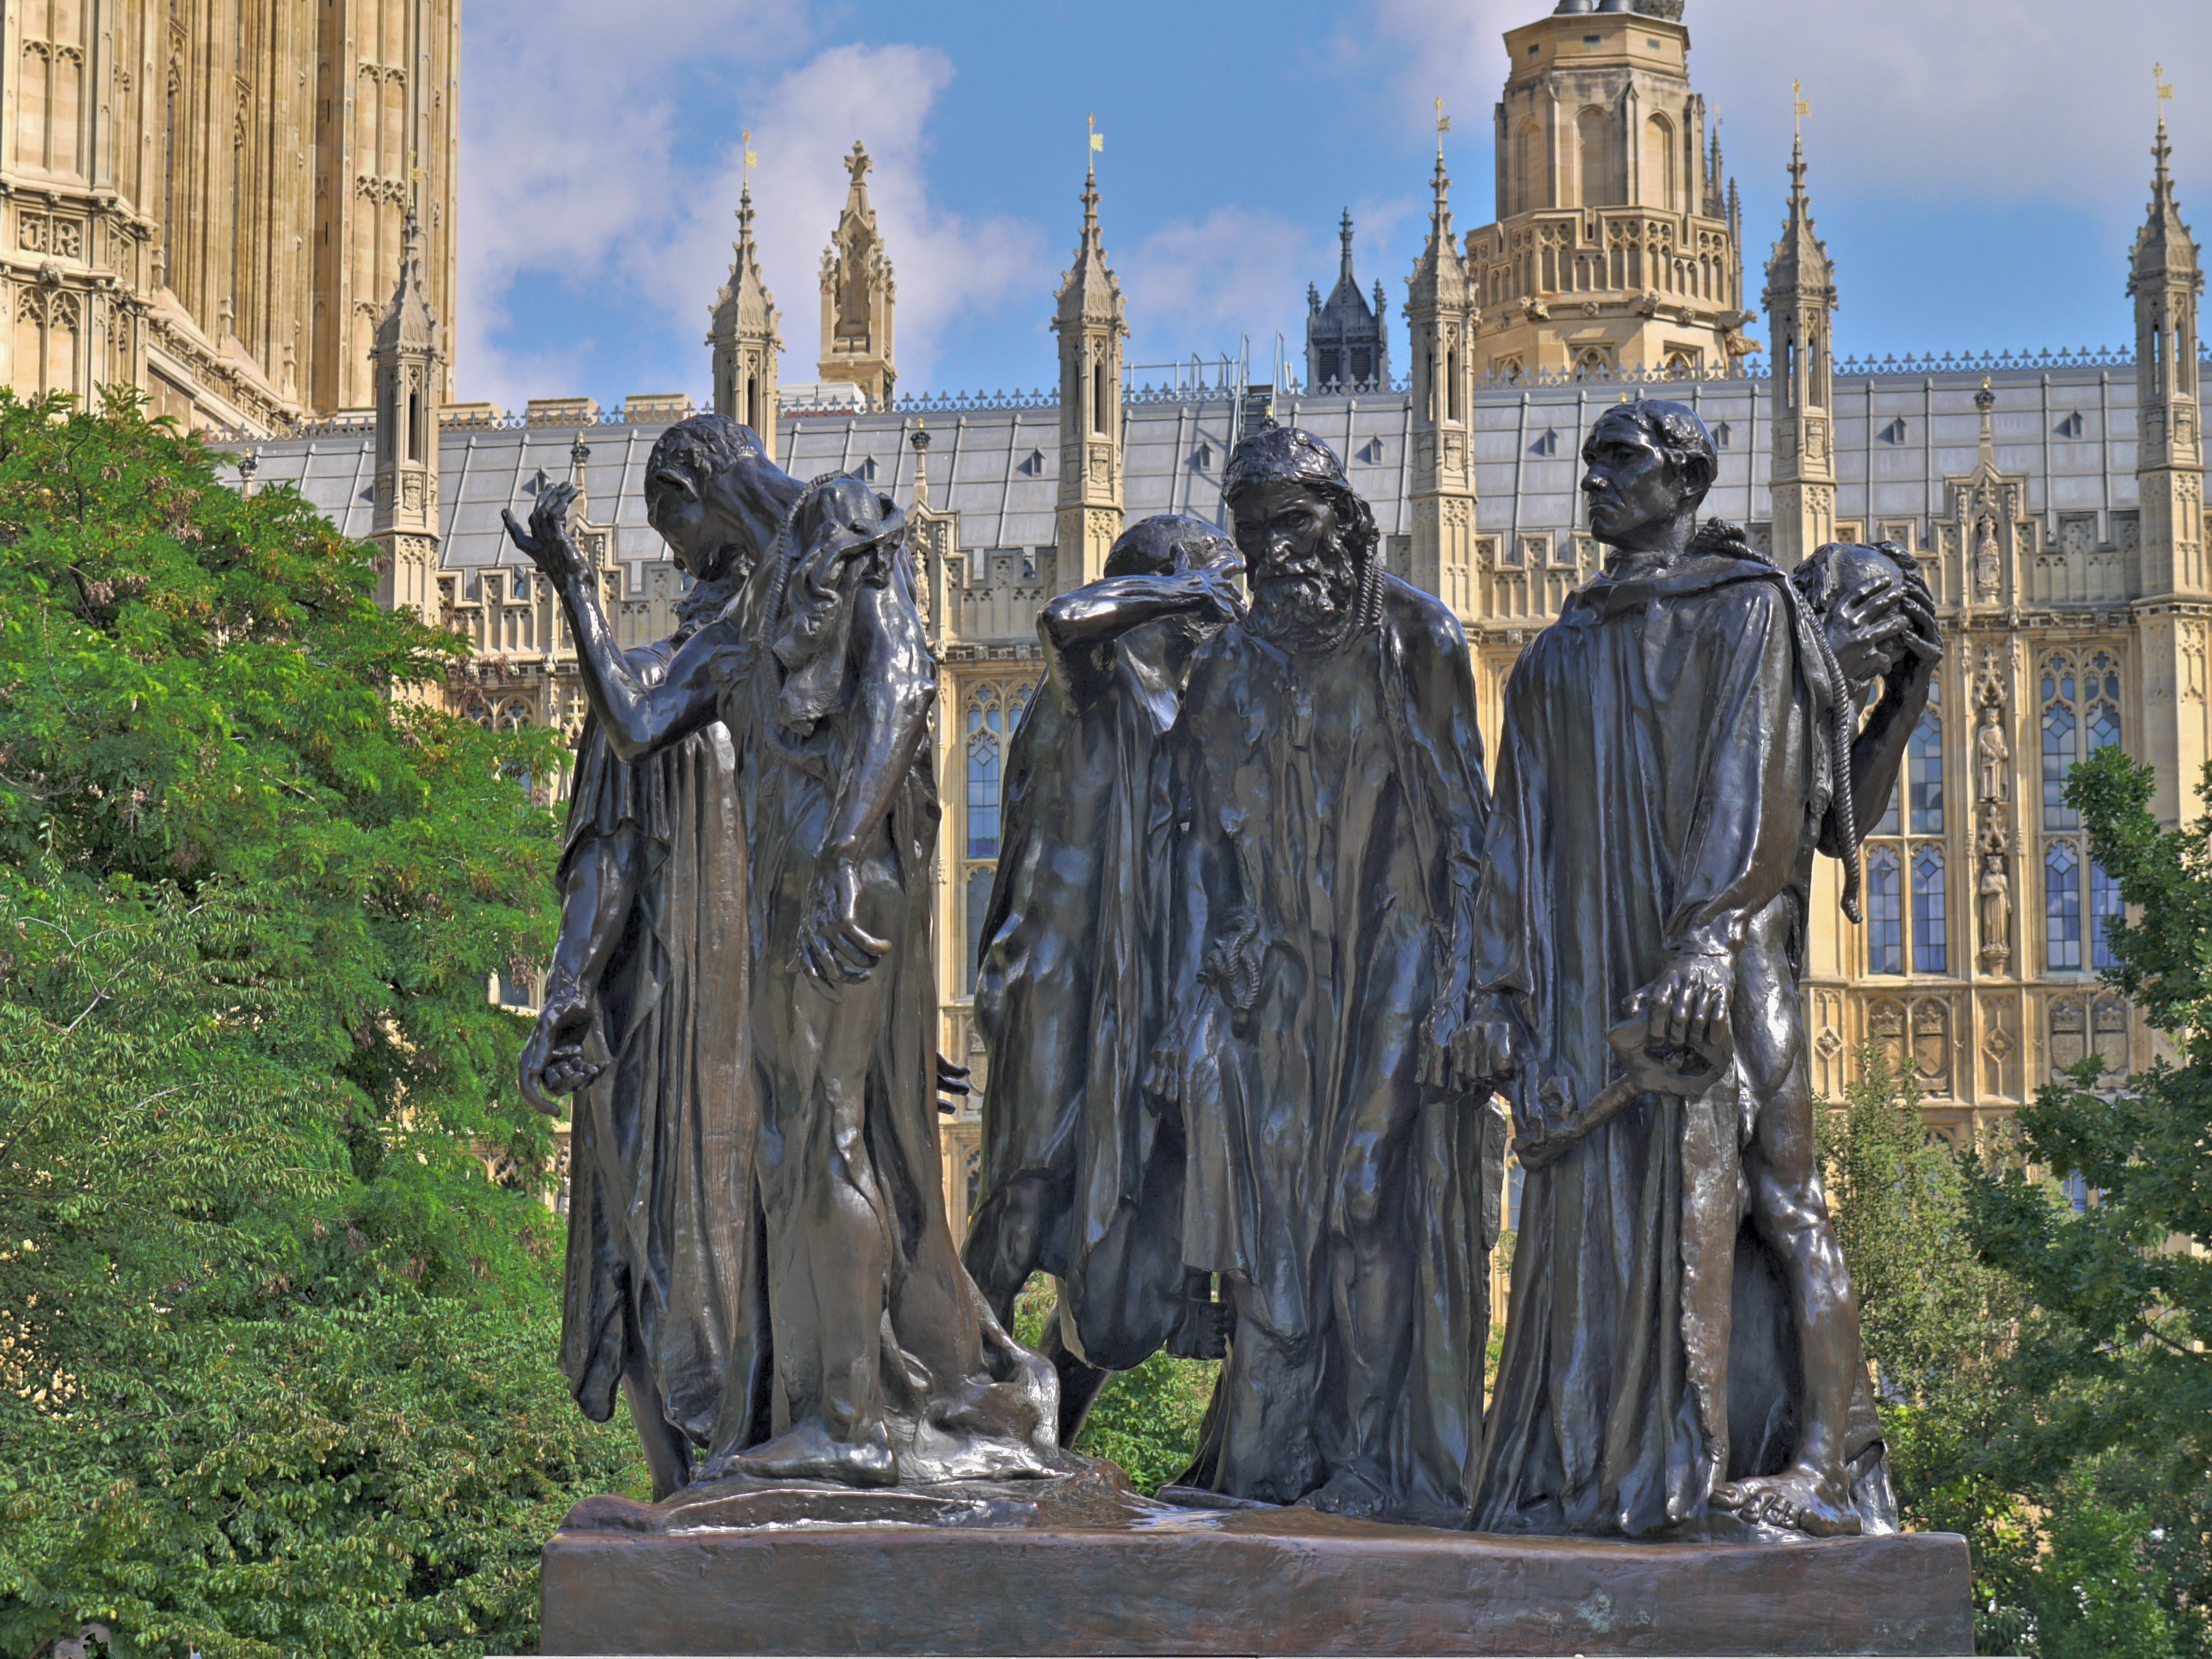 The Burghers of Calais statue by Rodin in Victoria Tower Gardens, Westminster, London.